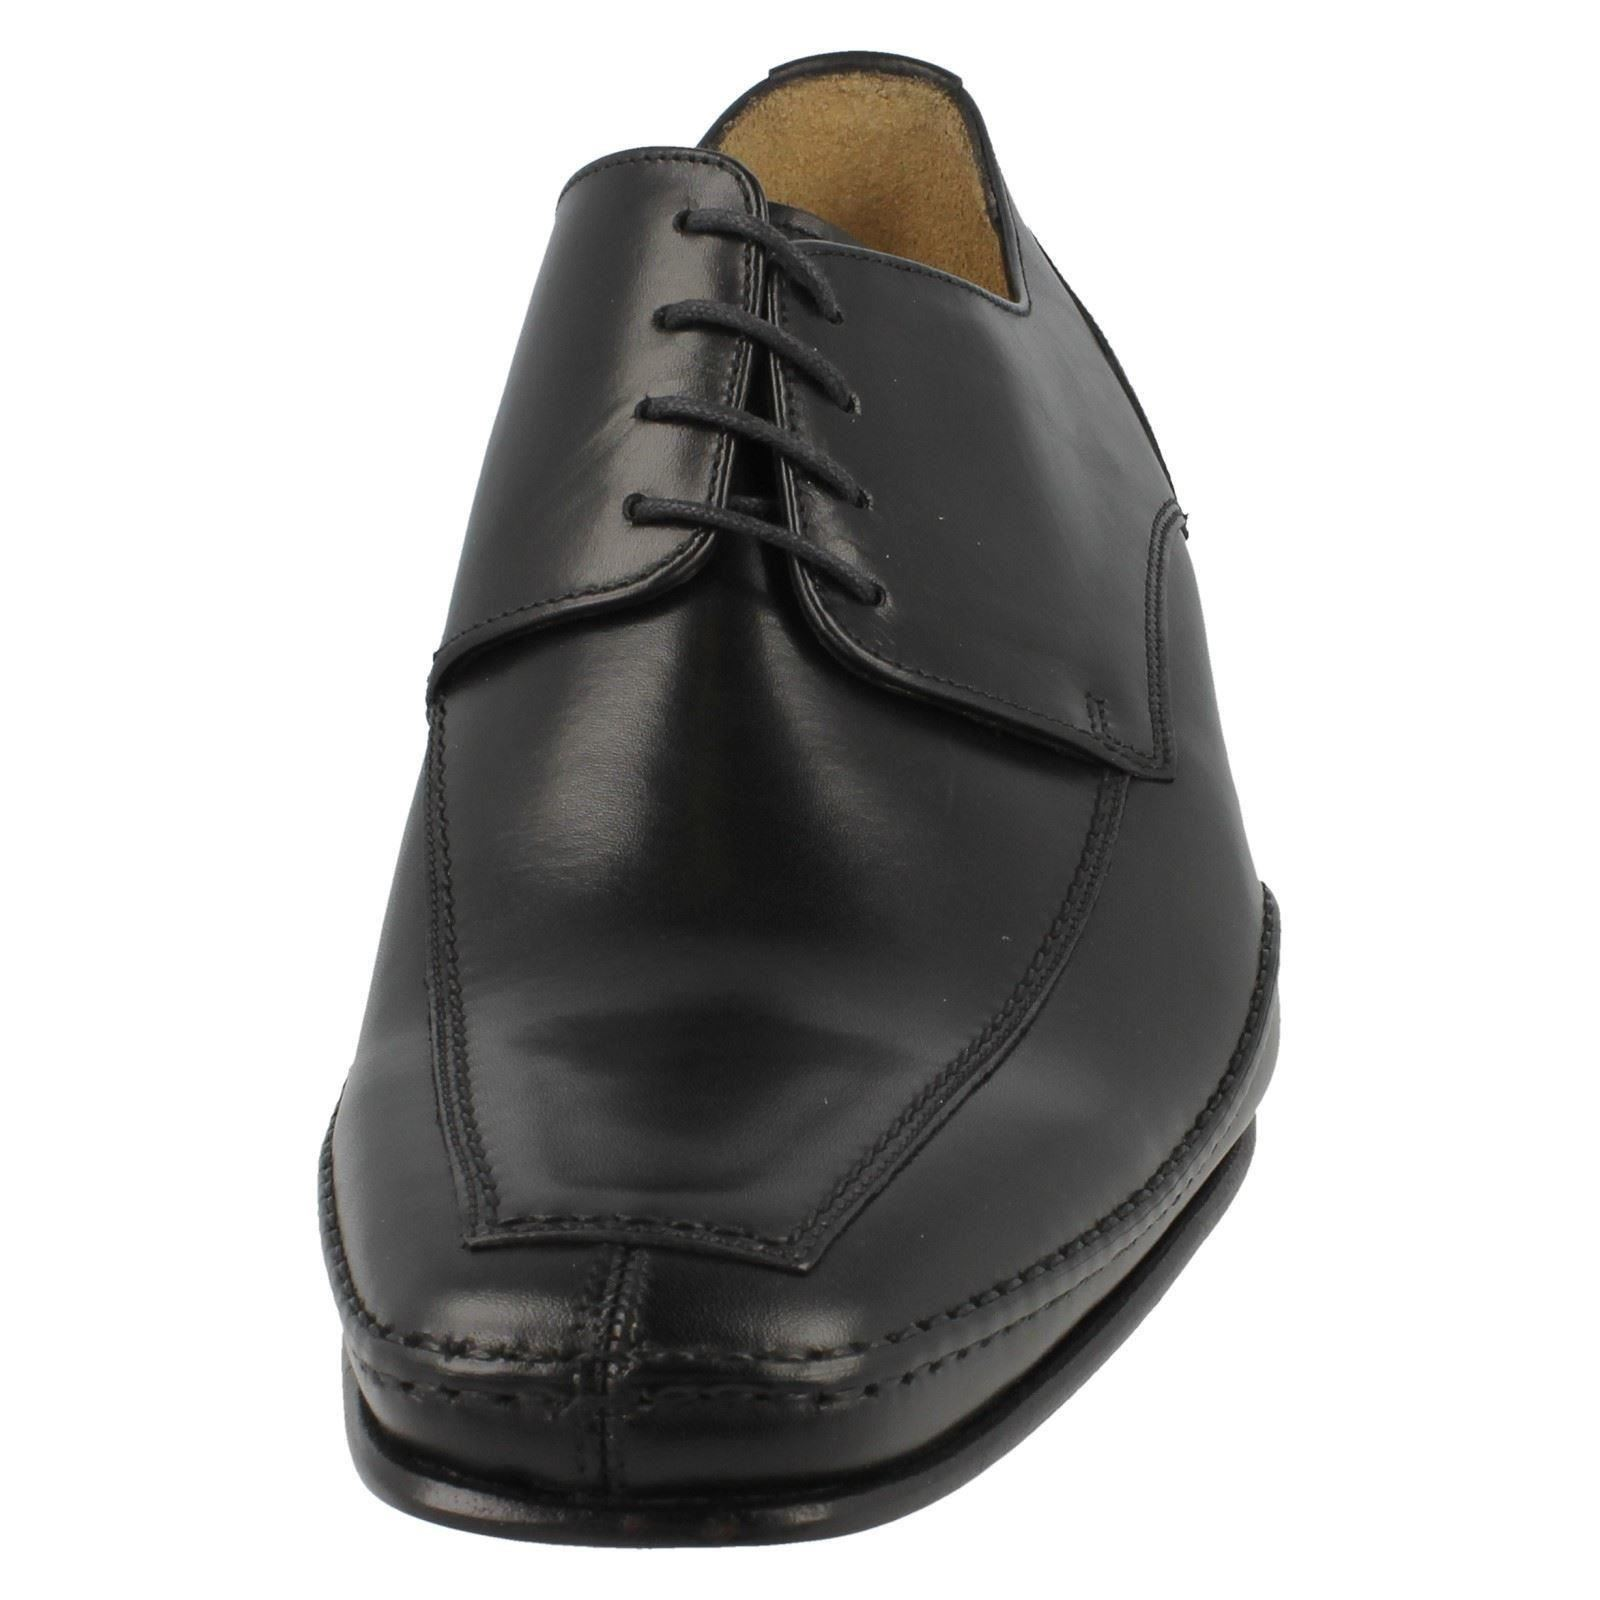 Uomo Loake Leder Square Toe Stitch Schuhes Detail Formal Lace Up Schuhes Stitch Hurst 58d8a4